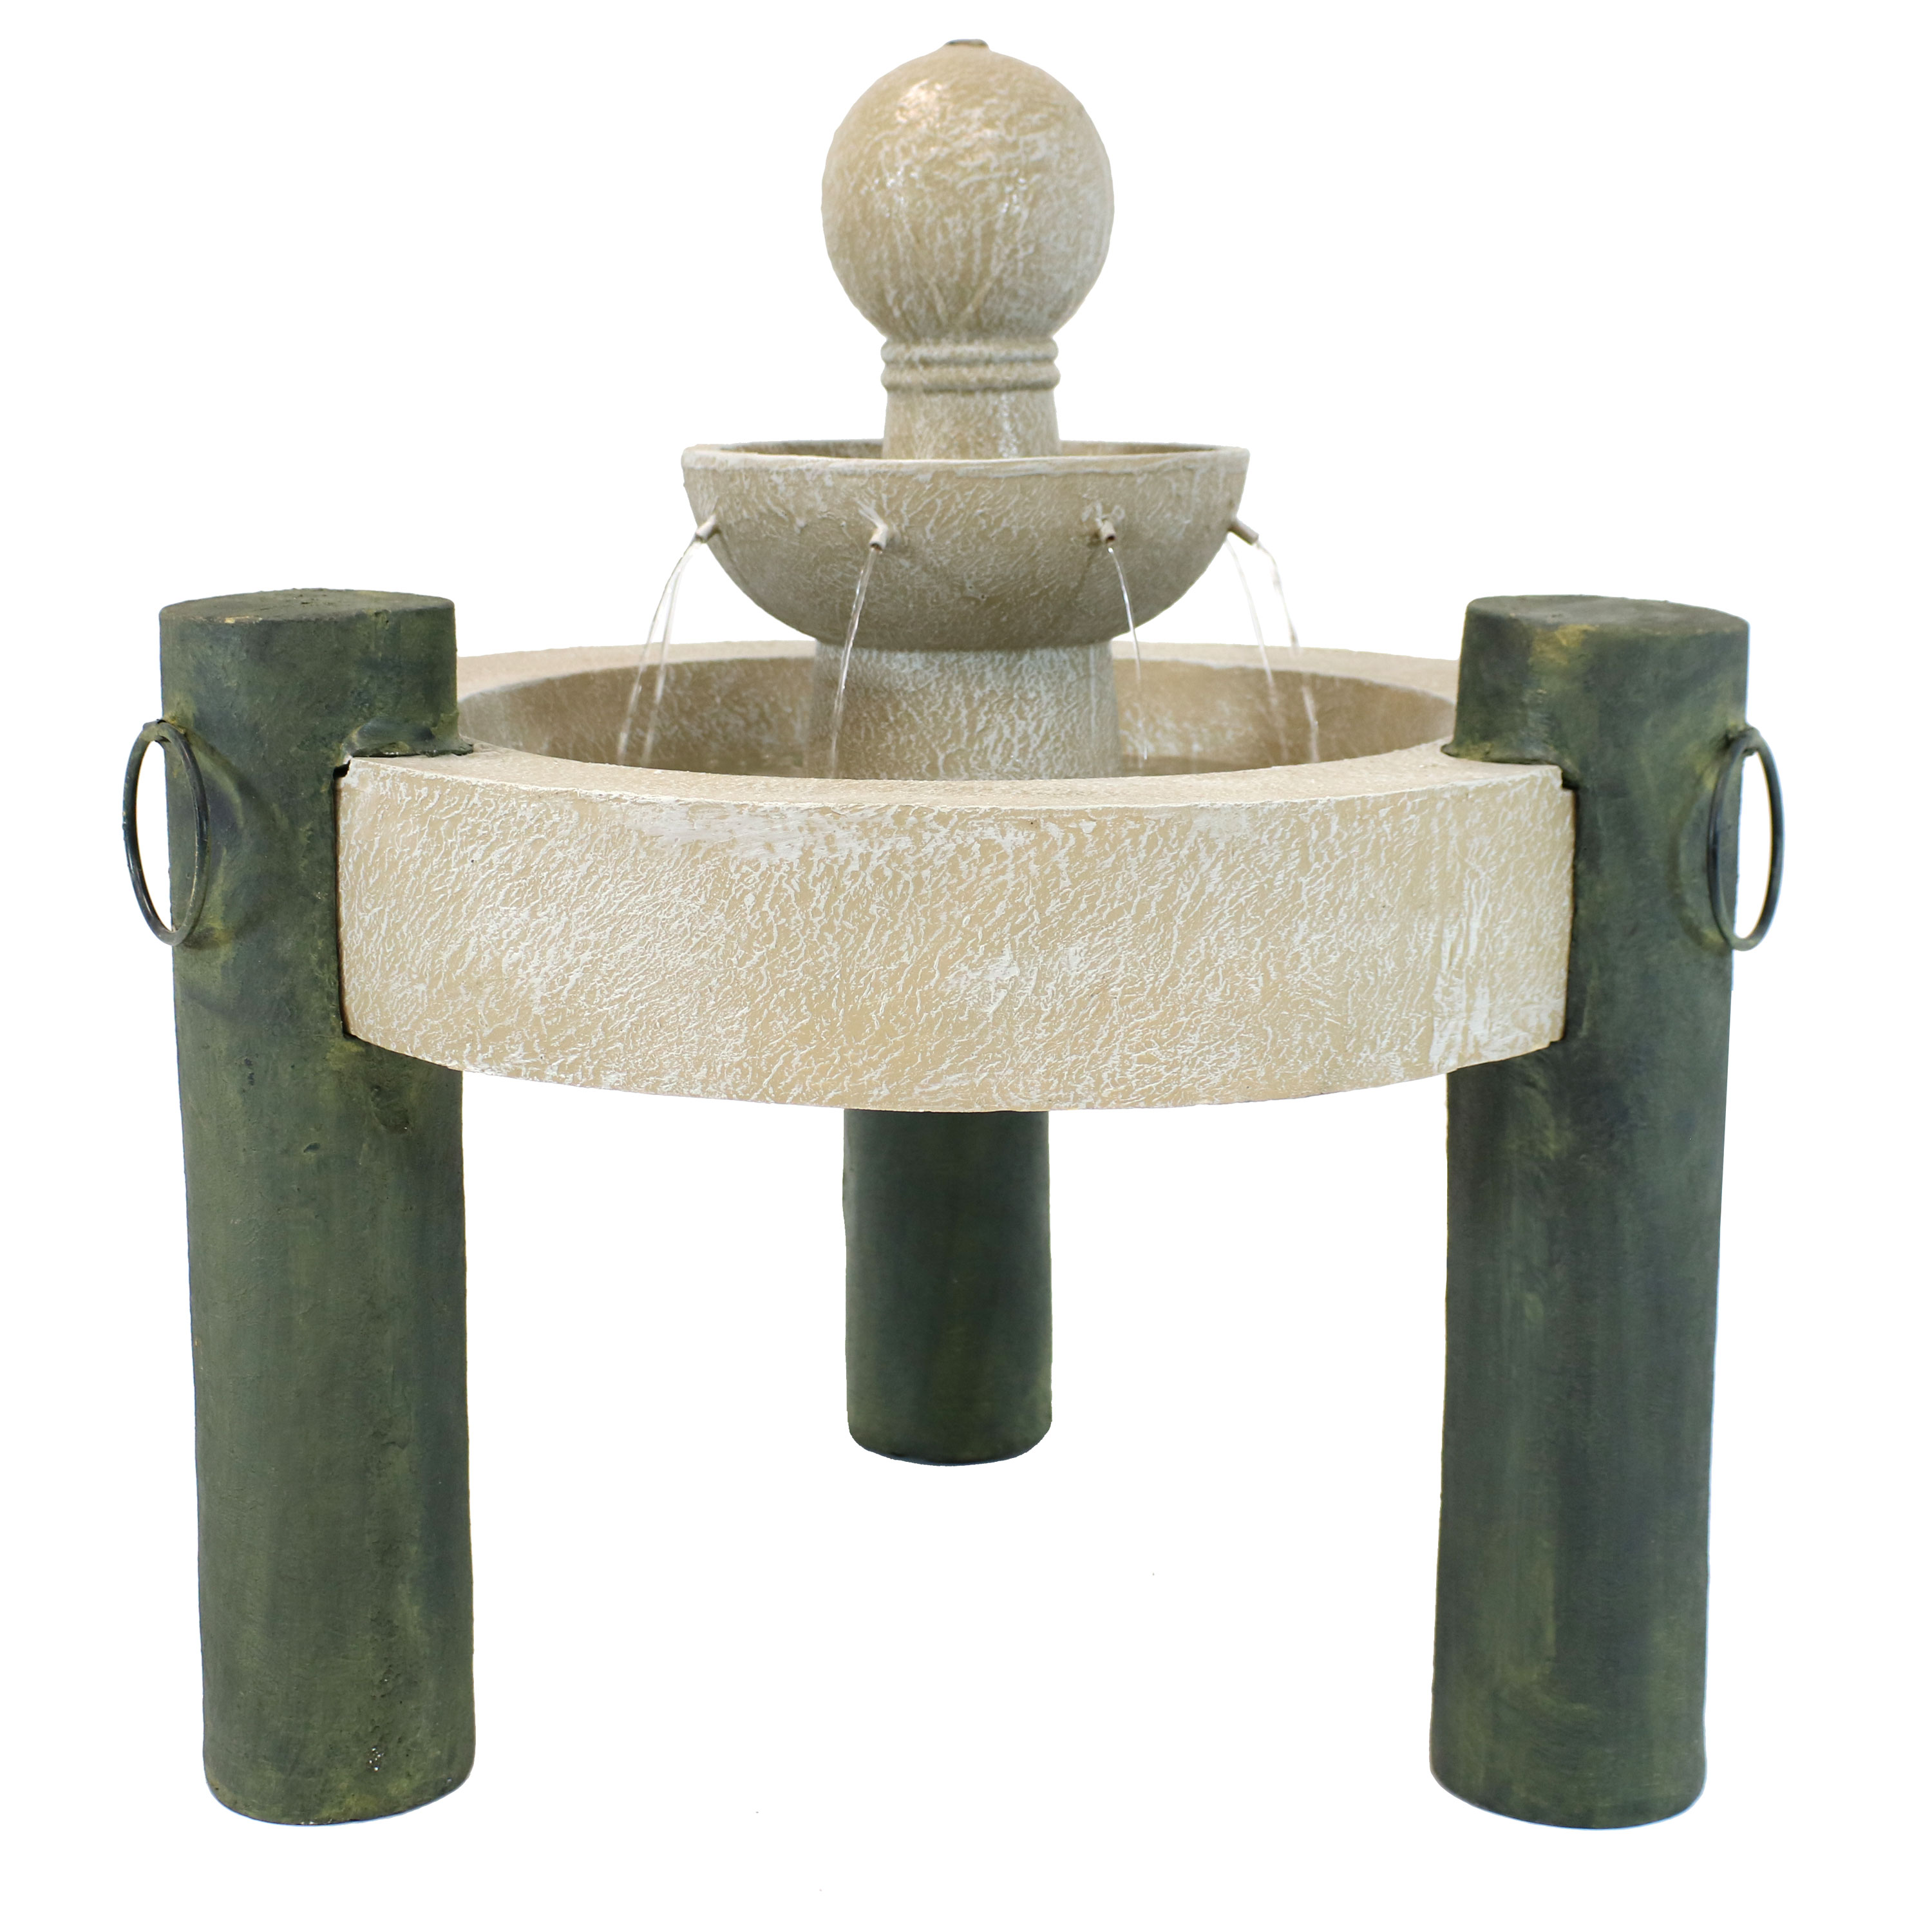 Raised Cathedral Basin Fountain Tall Photo